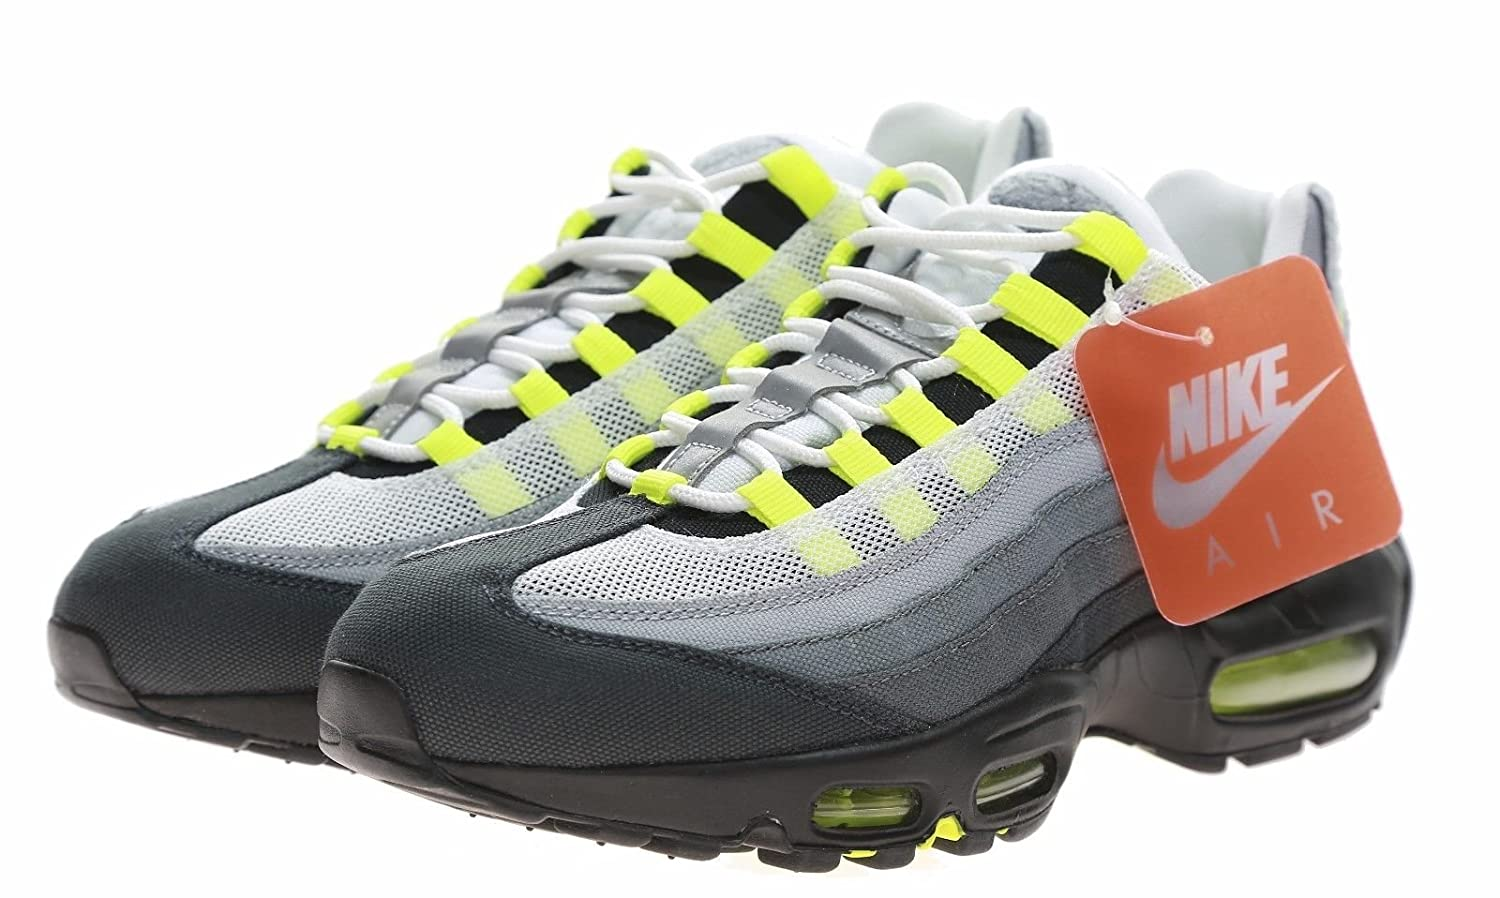 Nike Mens Air Max 95 Neon OG Patch SP White Neon Yellow Trainer Size 10 UK:  Amazon.fr: Chaussures et Sacs